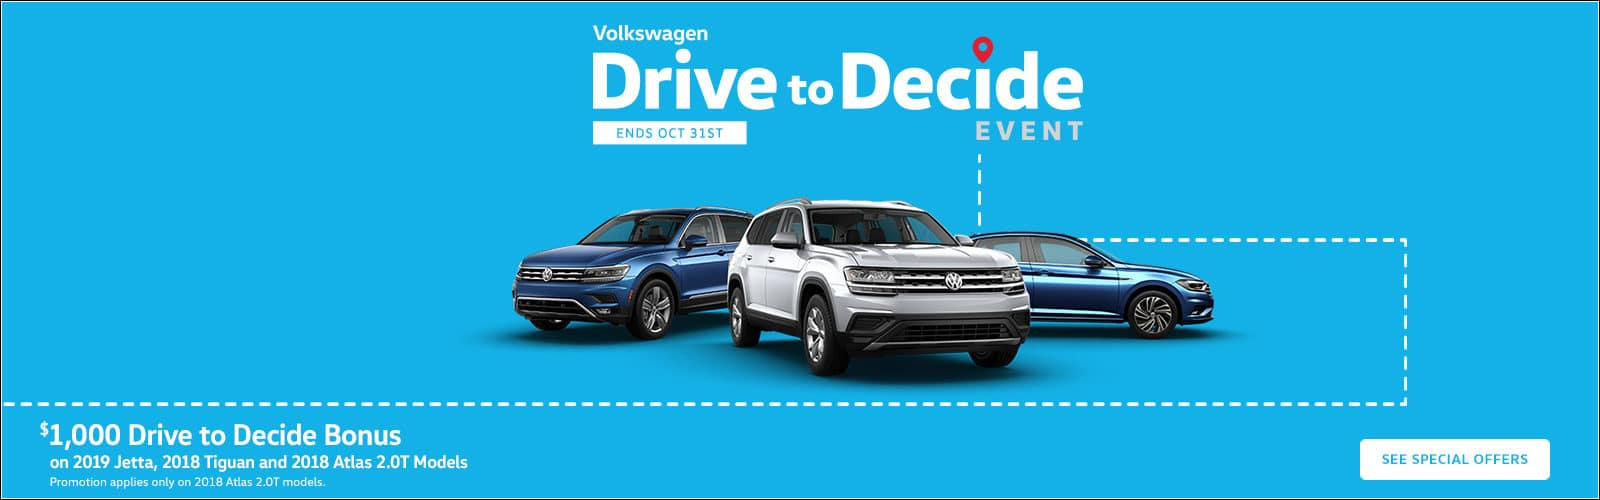 drive to decide